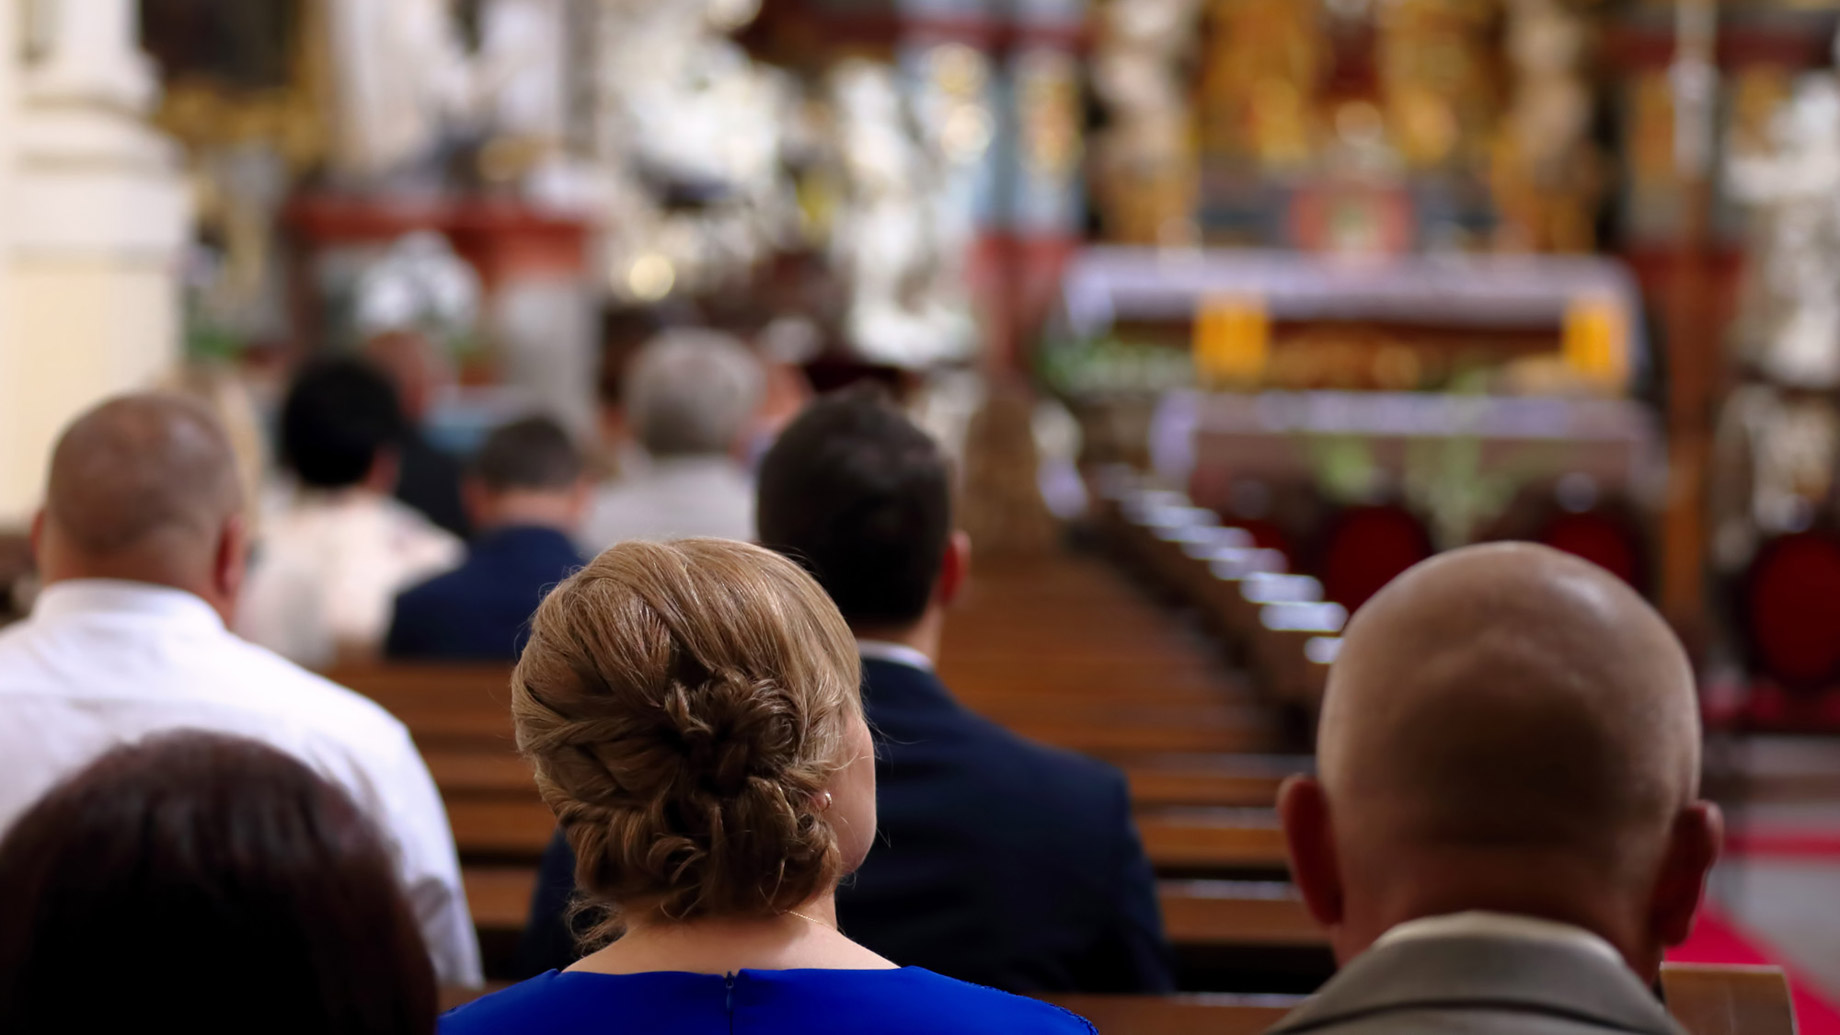 7 Innovative Ways to Grow Your Church During a Pandemic